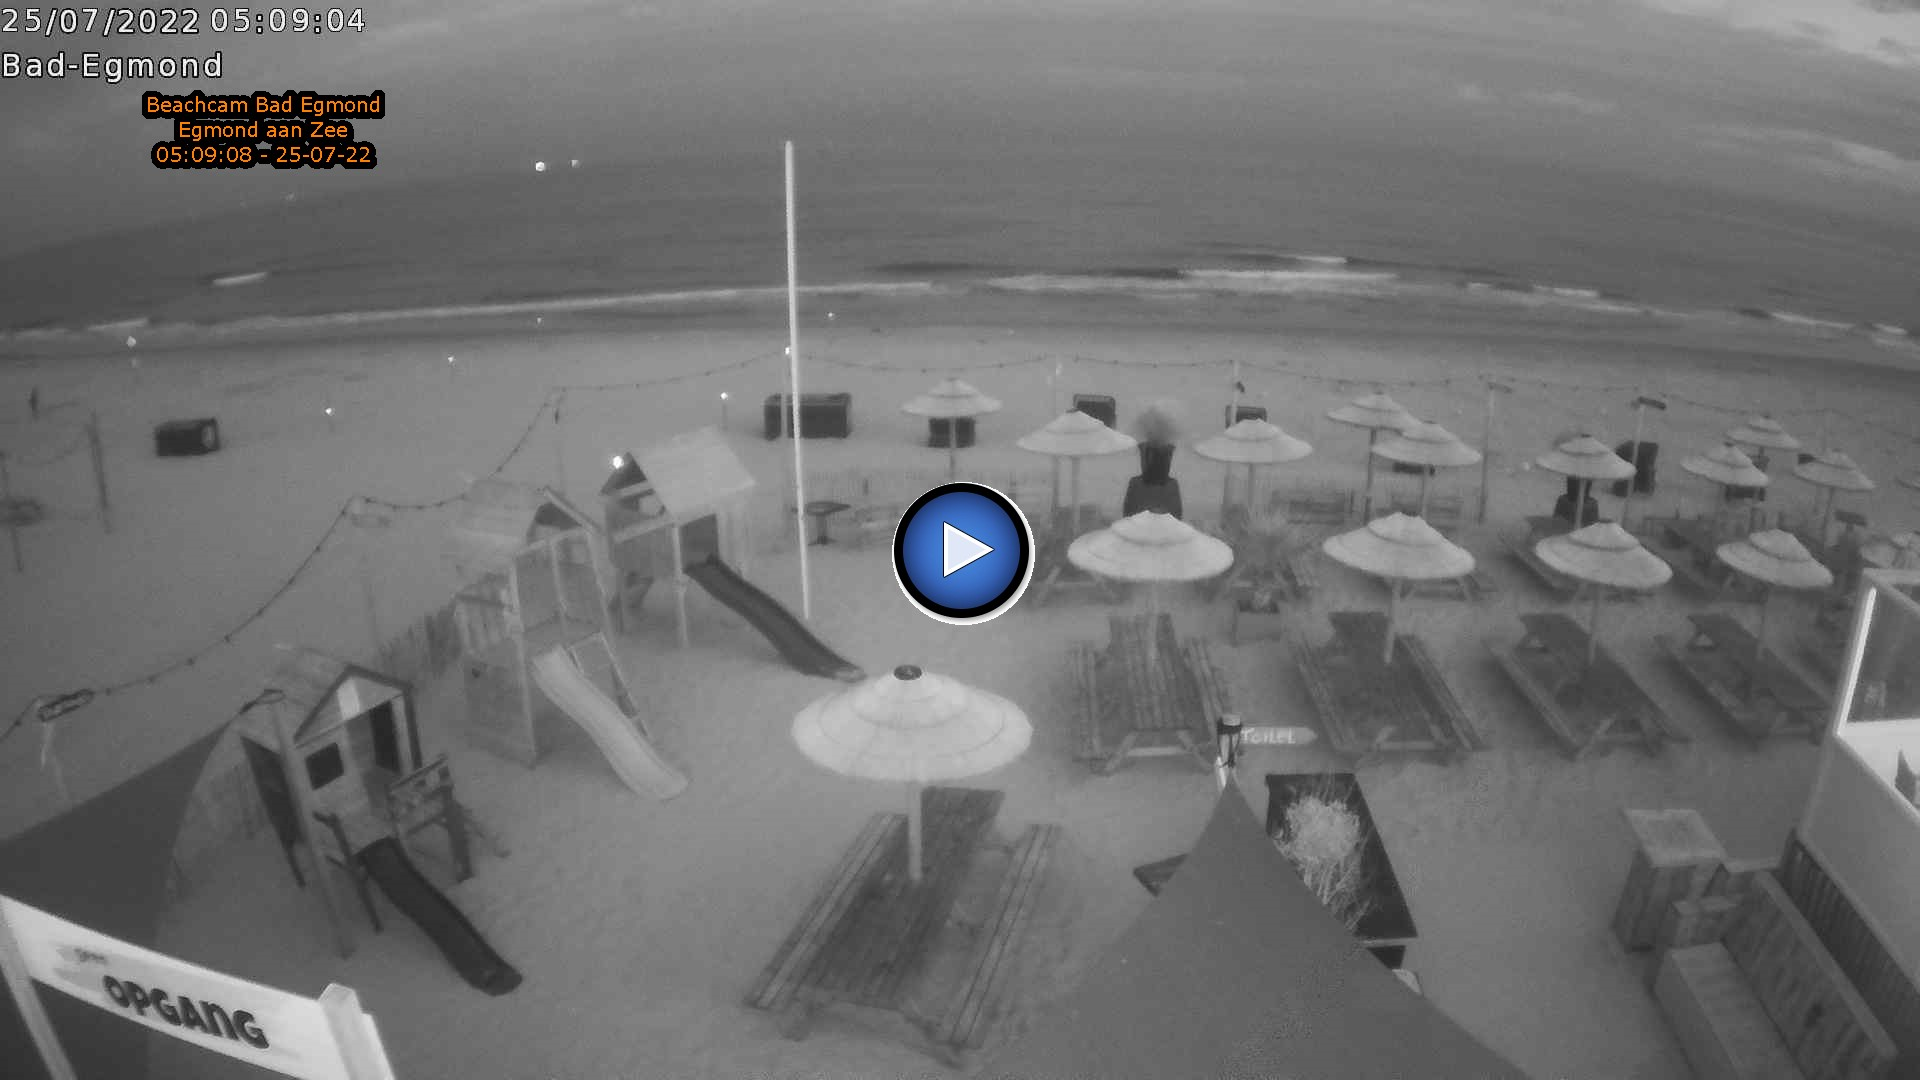 Webcam Bad Egmond